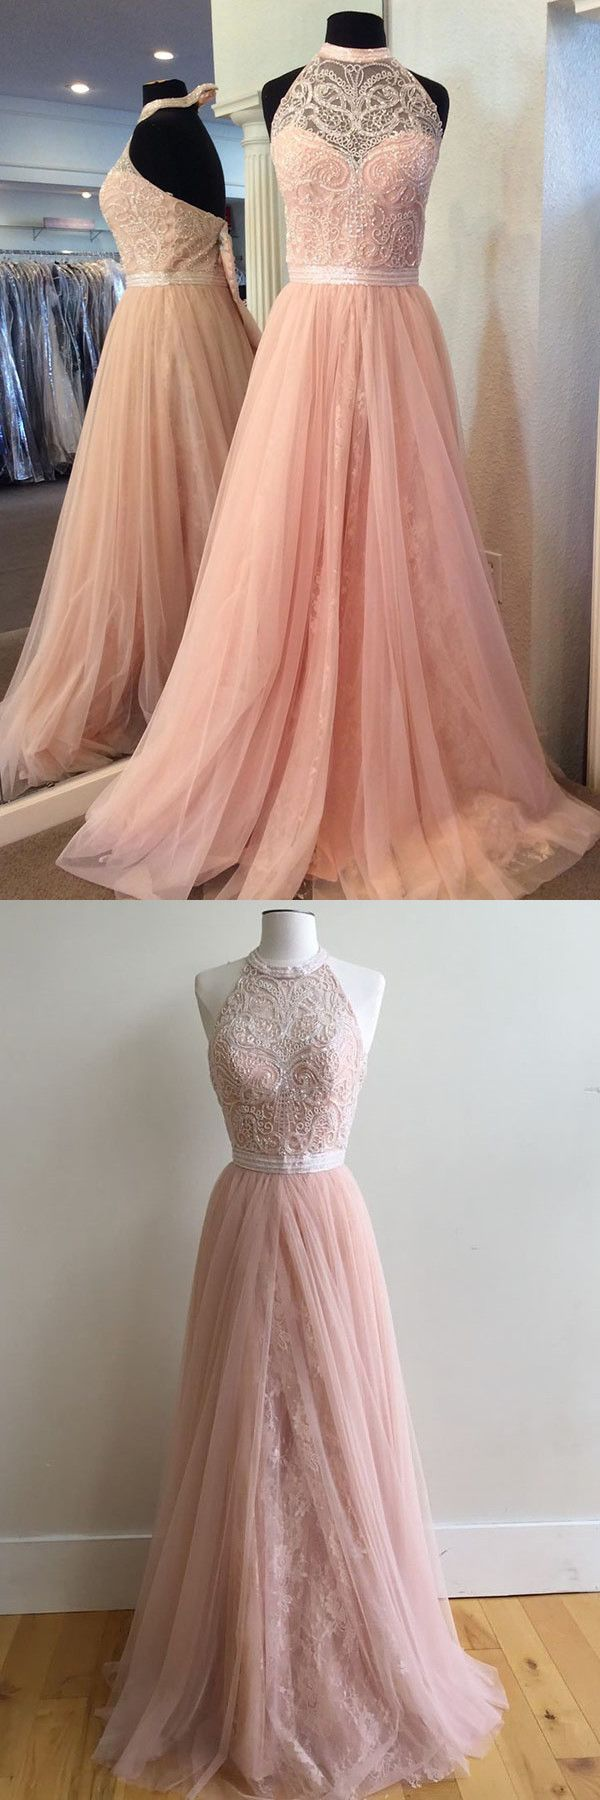 pink long prom dress halter pink long prom dress prom dress